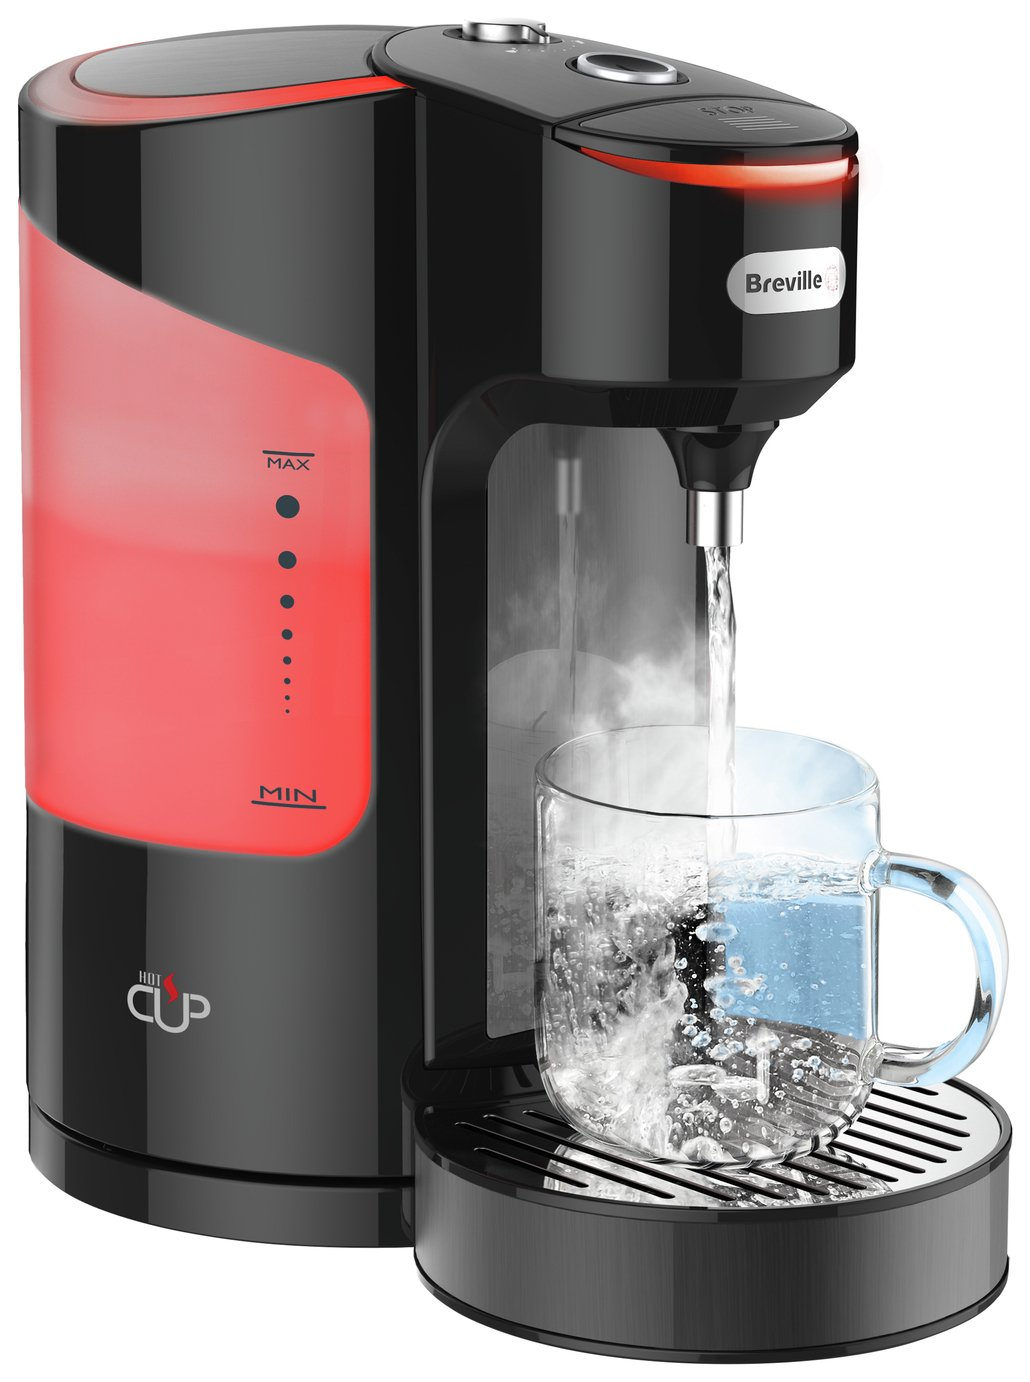 breville vkj784 hot cup with variable water dispenser